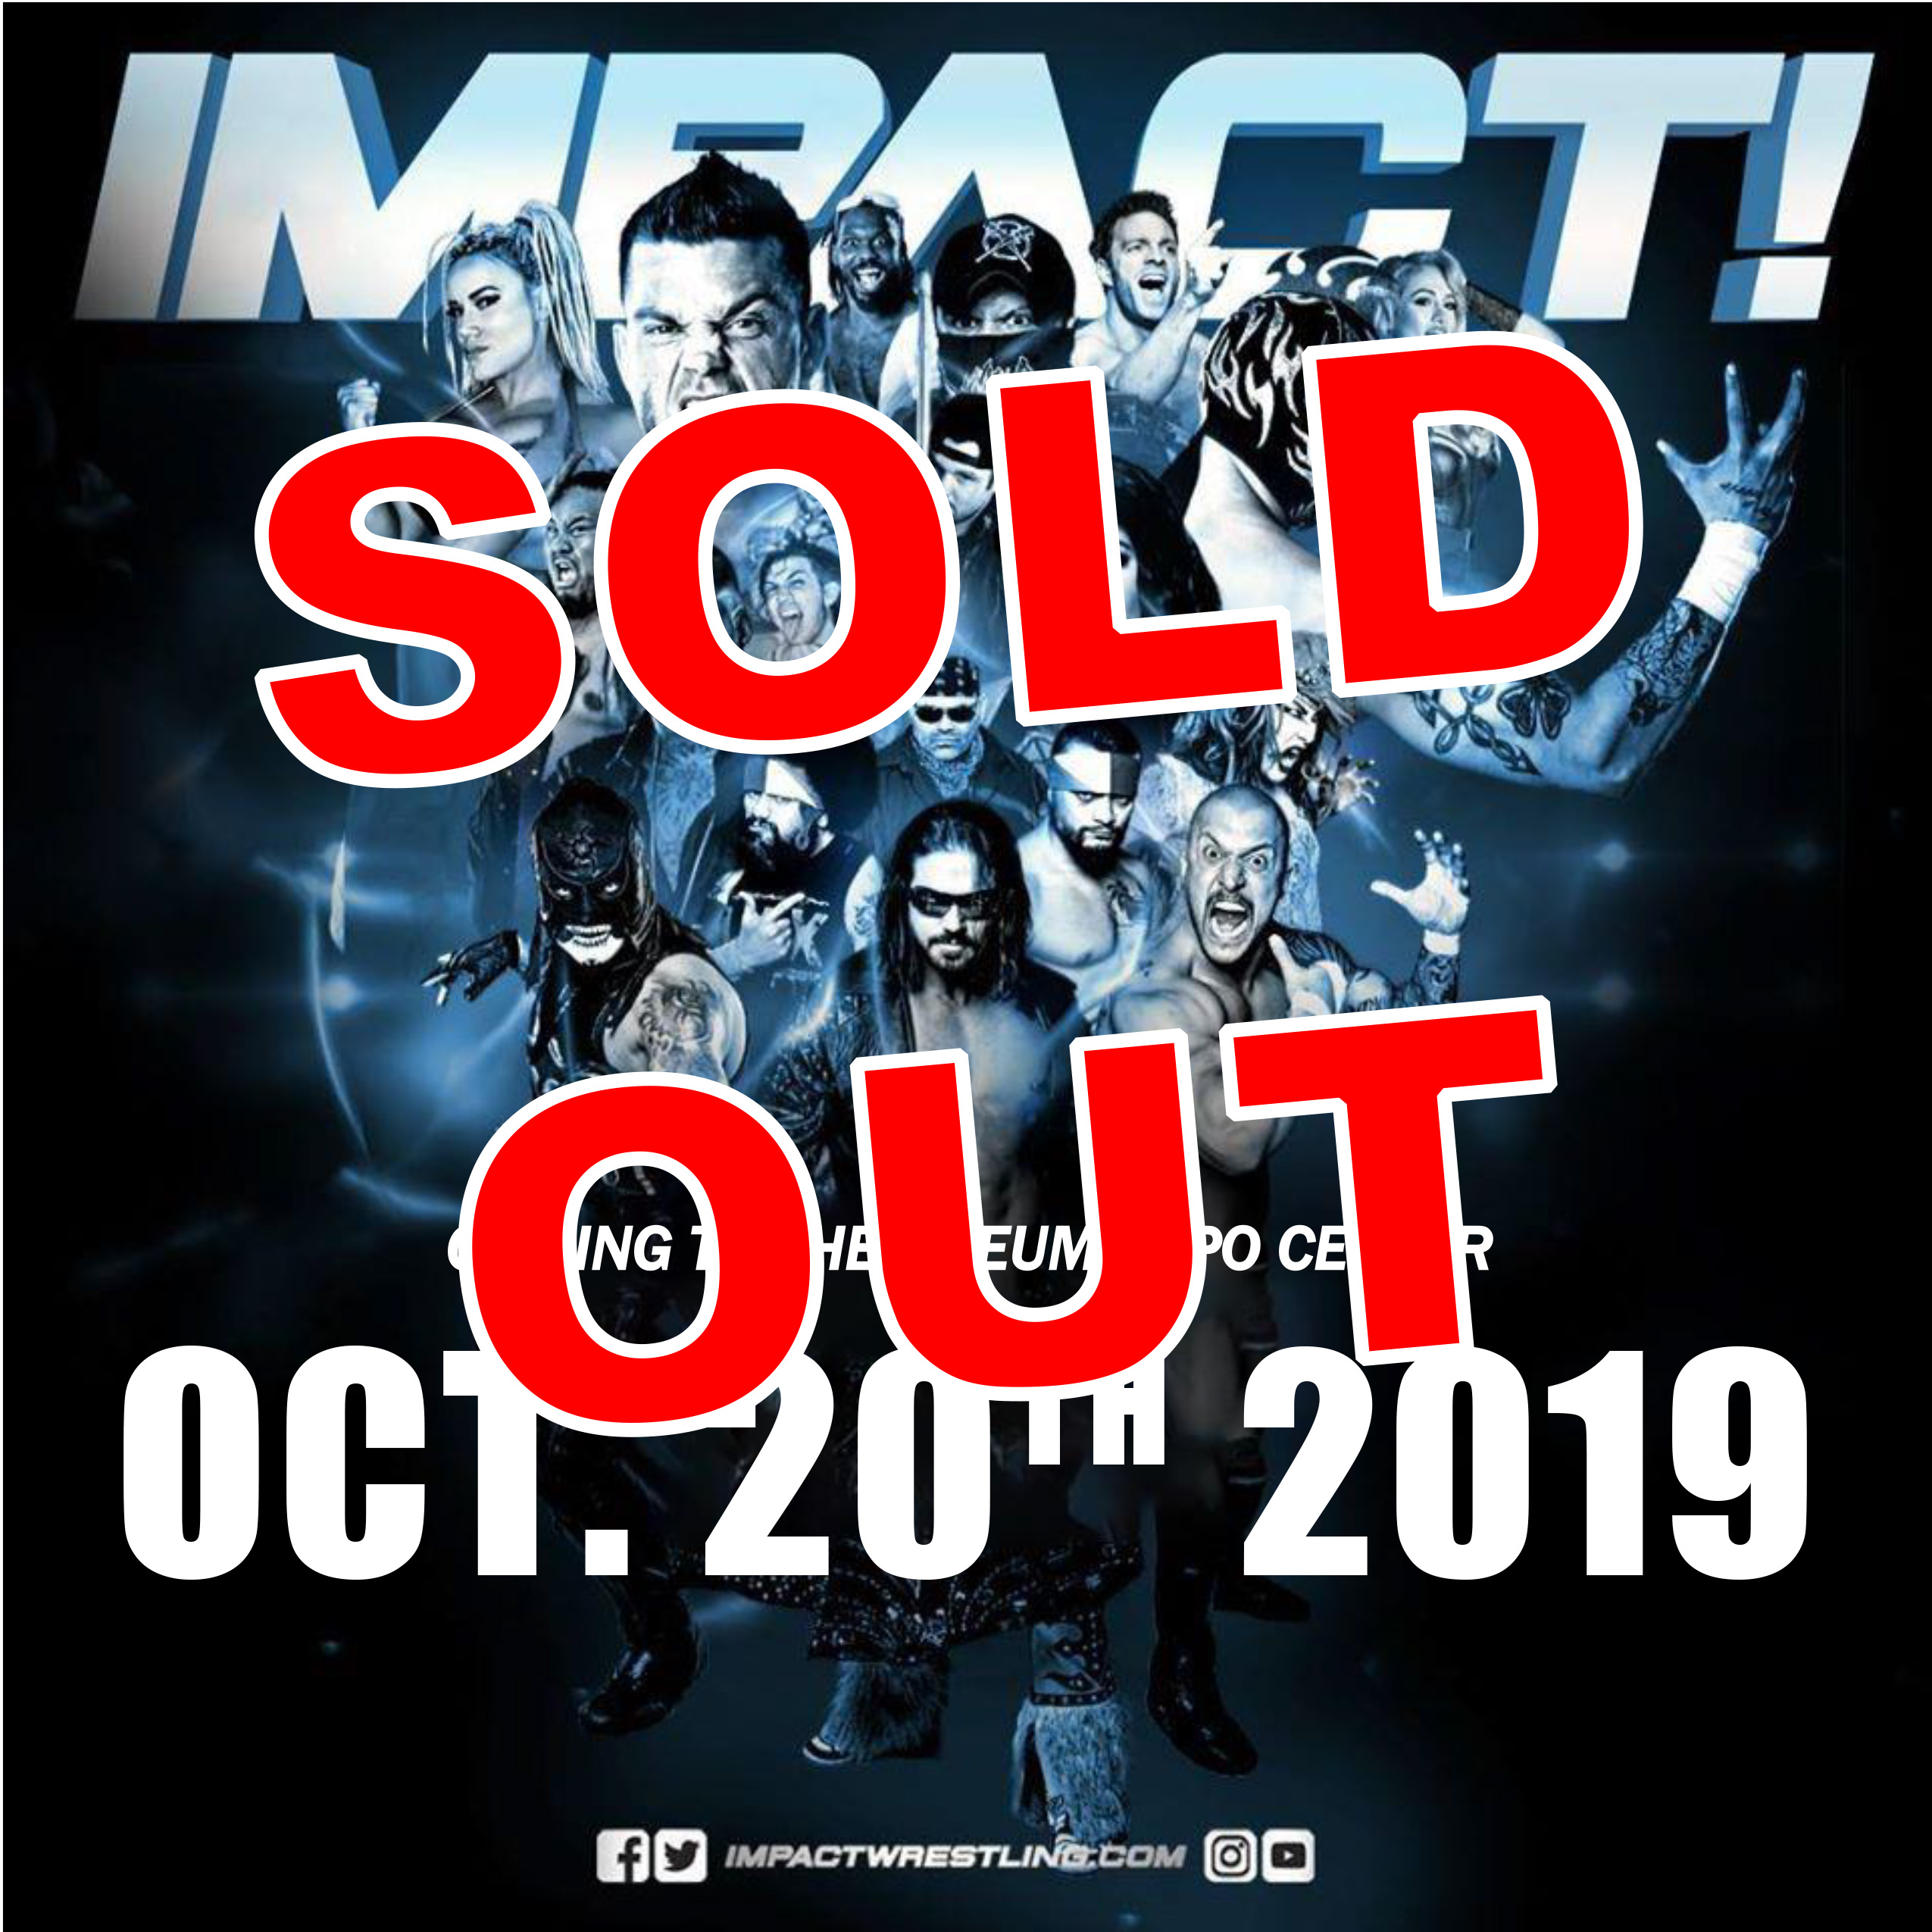 Impact Wrestling SOLD OUT at the Odeum Expo Center